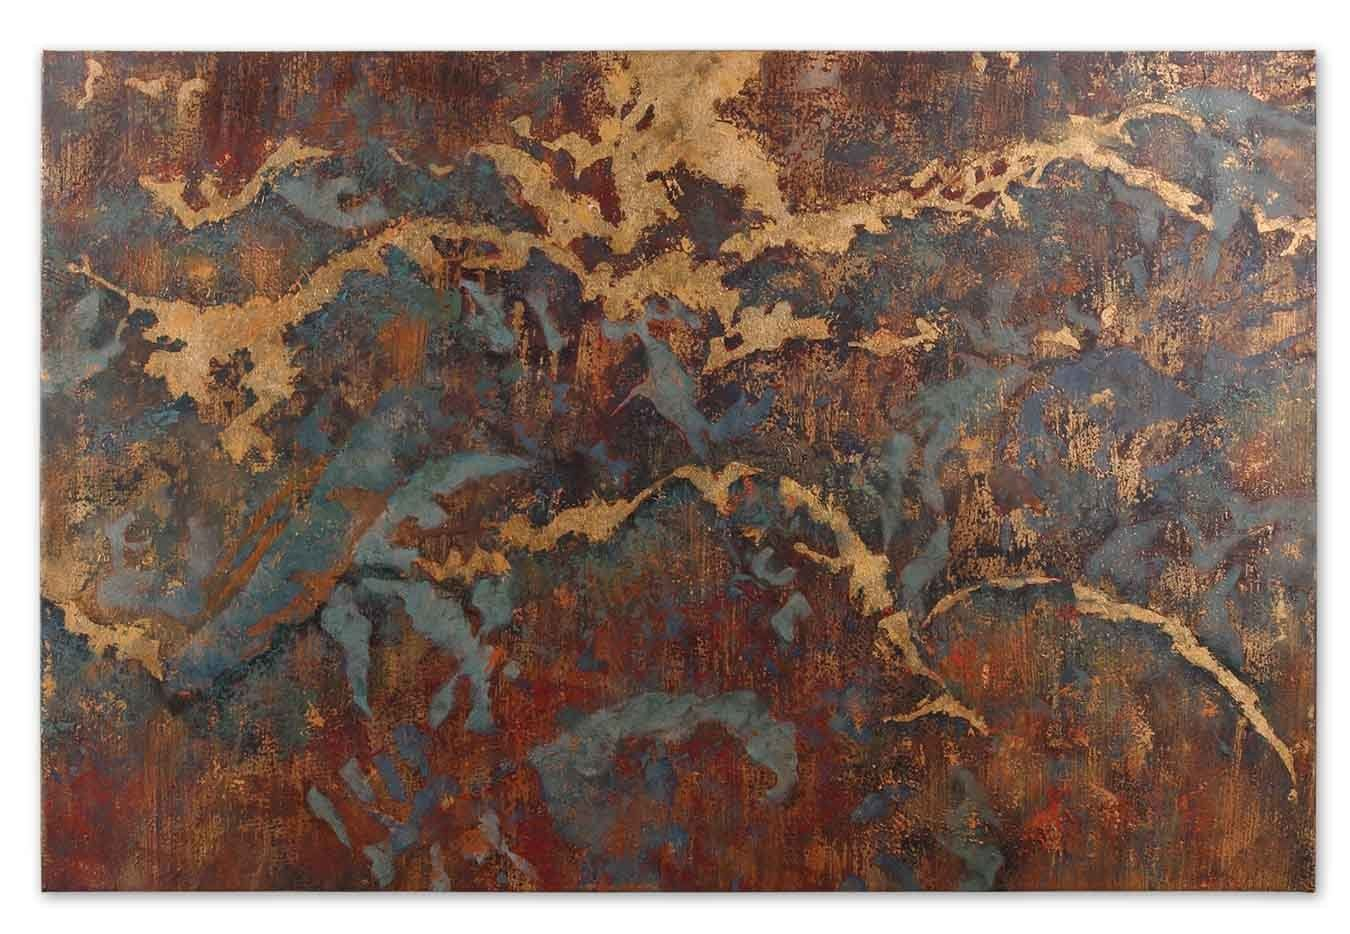 Oil On Canvas Hand Painted Oil On Canvas Stormy Night Depiction Art Piece From The Stormy Night Collection Model-32182. Finish: Wood, Style: Contemporary. Lenght: 1.50in, Width: 40.00in, Height: 60.00in. From Uttermost.